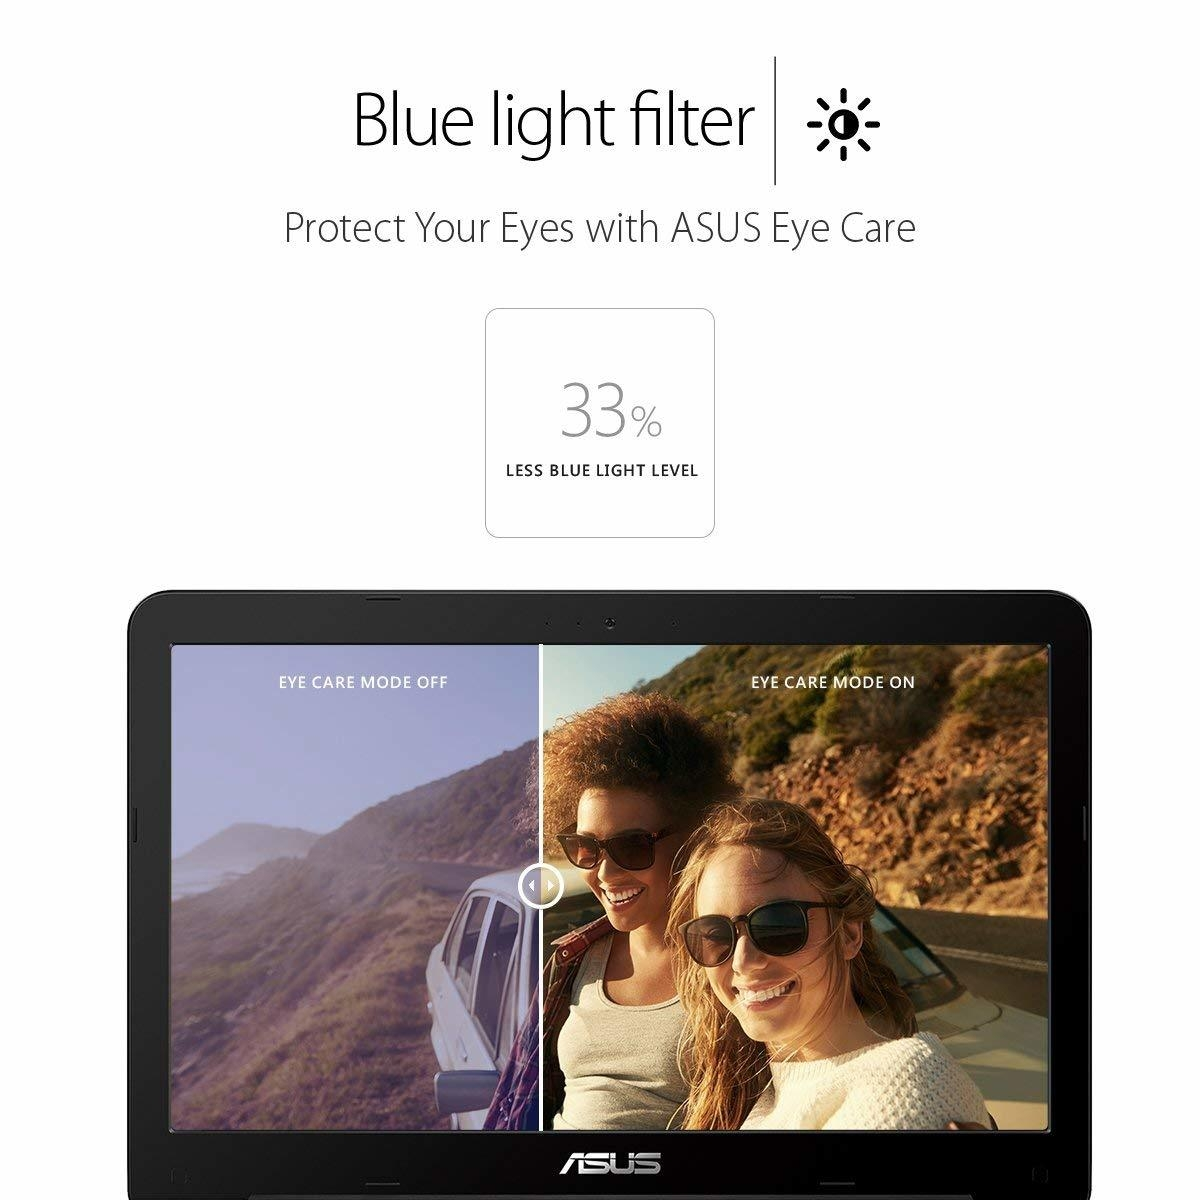 Image result for asus Protect Your Eyes with ASUS Eye Care